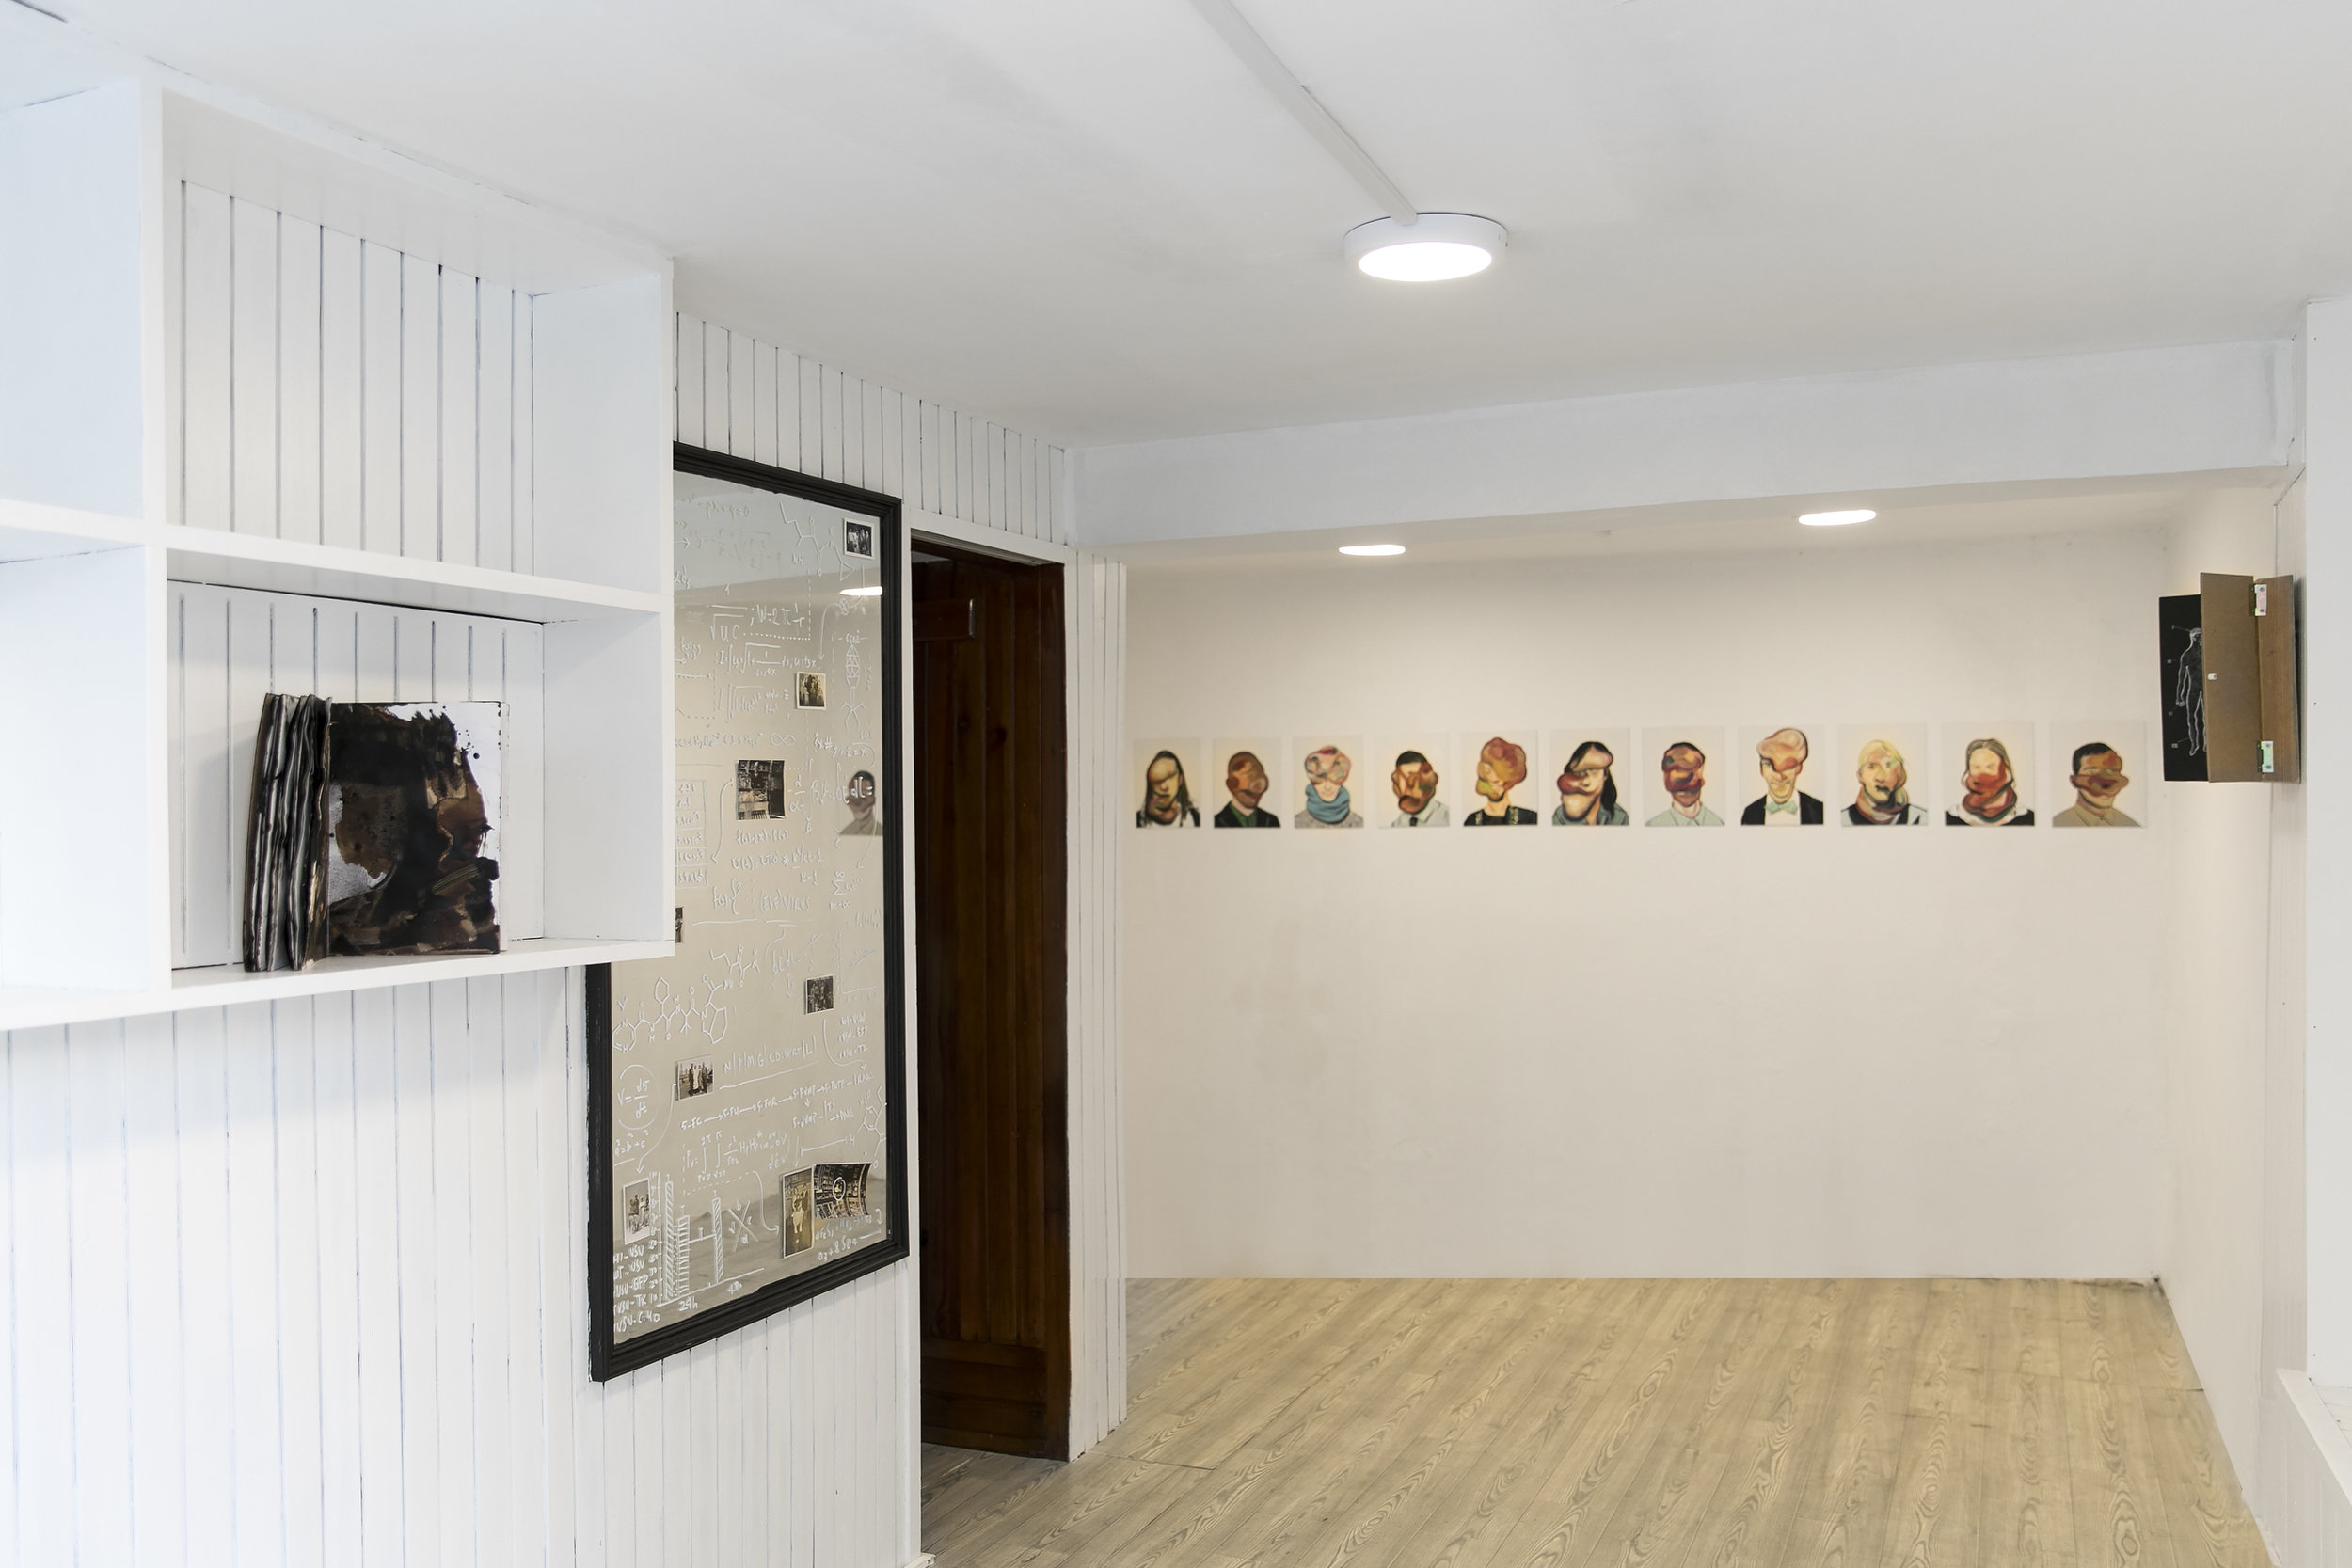 Sabo's paintings and drawings narrate a fictive story by transforming the house it is located in.